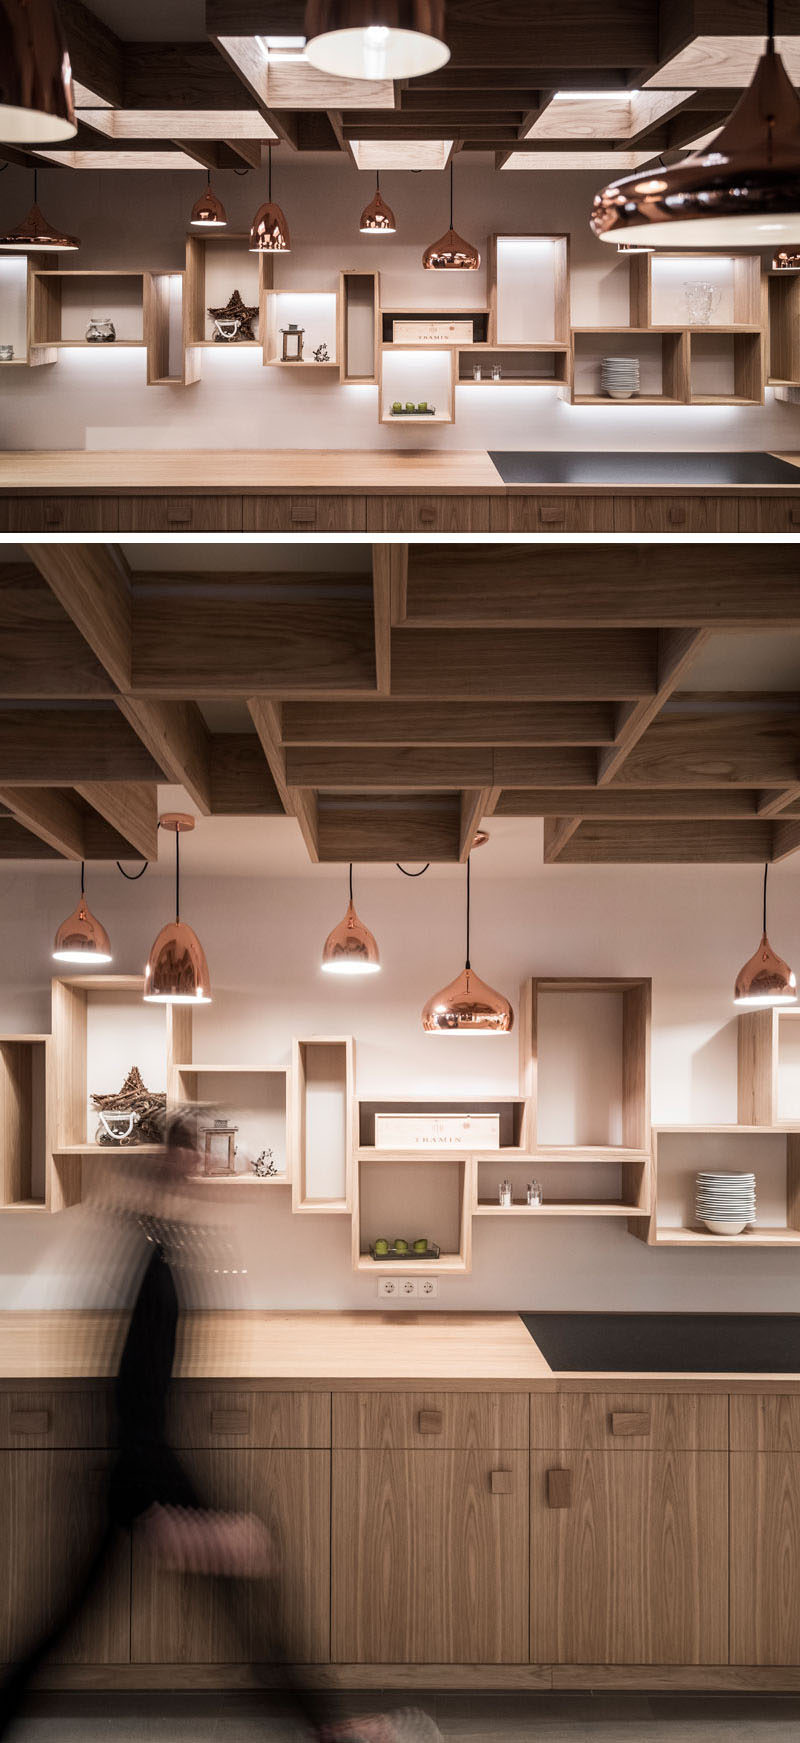 Floating, wood boxes with hidden lighting are attached to the walls and ceiling in this casual restaurant space, while different shaped bronze light fixtures add a metallic touch.